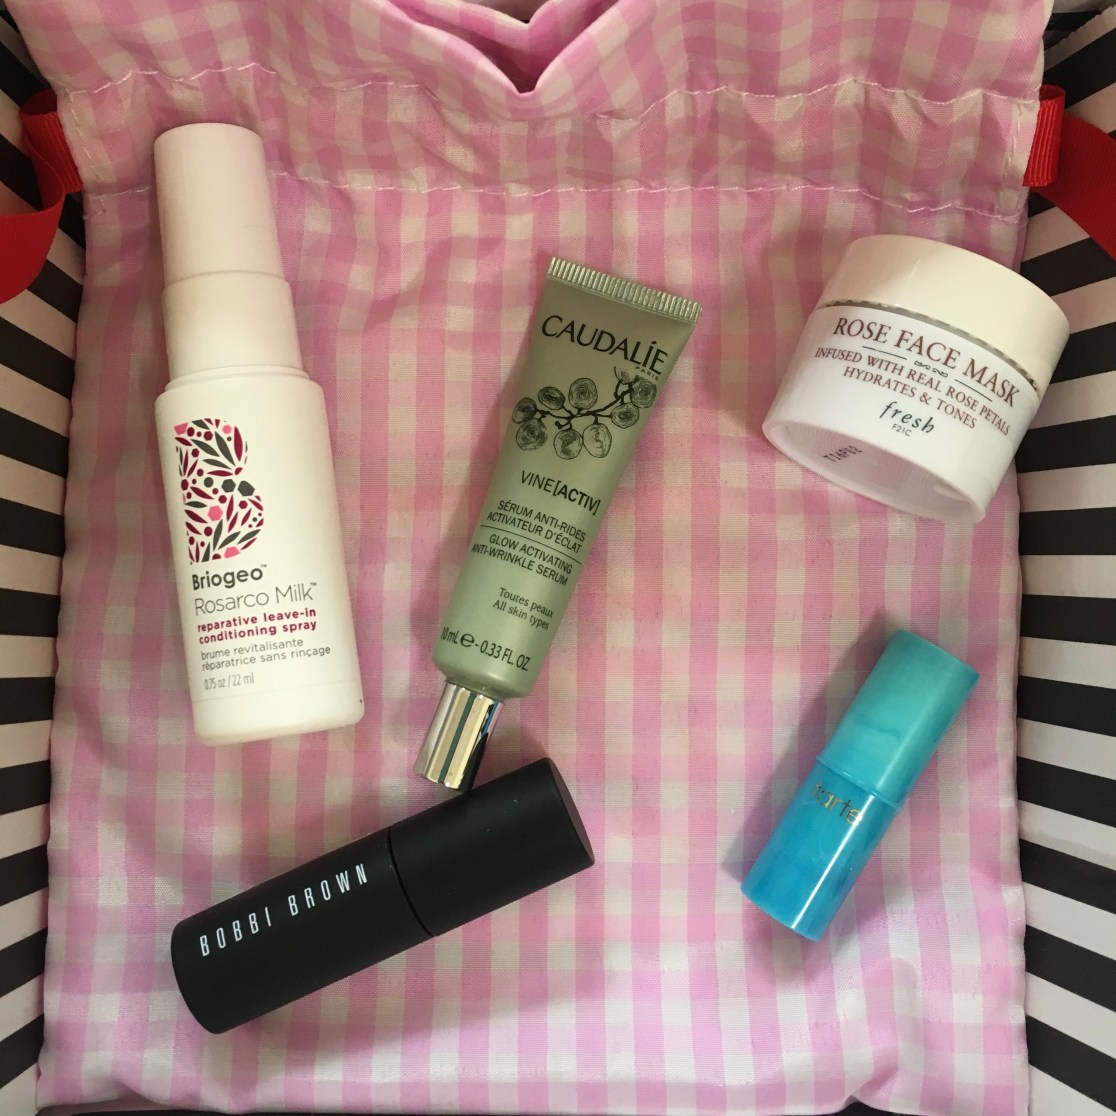 c42393b47 My July Sephora Play! box arrived late in the afternoon the day before I  left for Comic-Con, so I was too busy packing to start playing around with  my ...